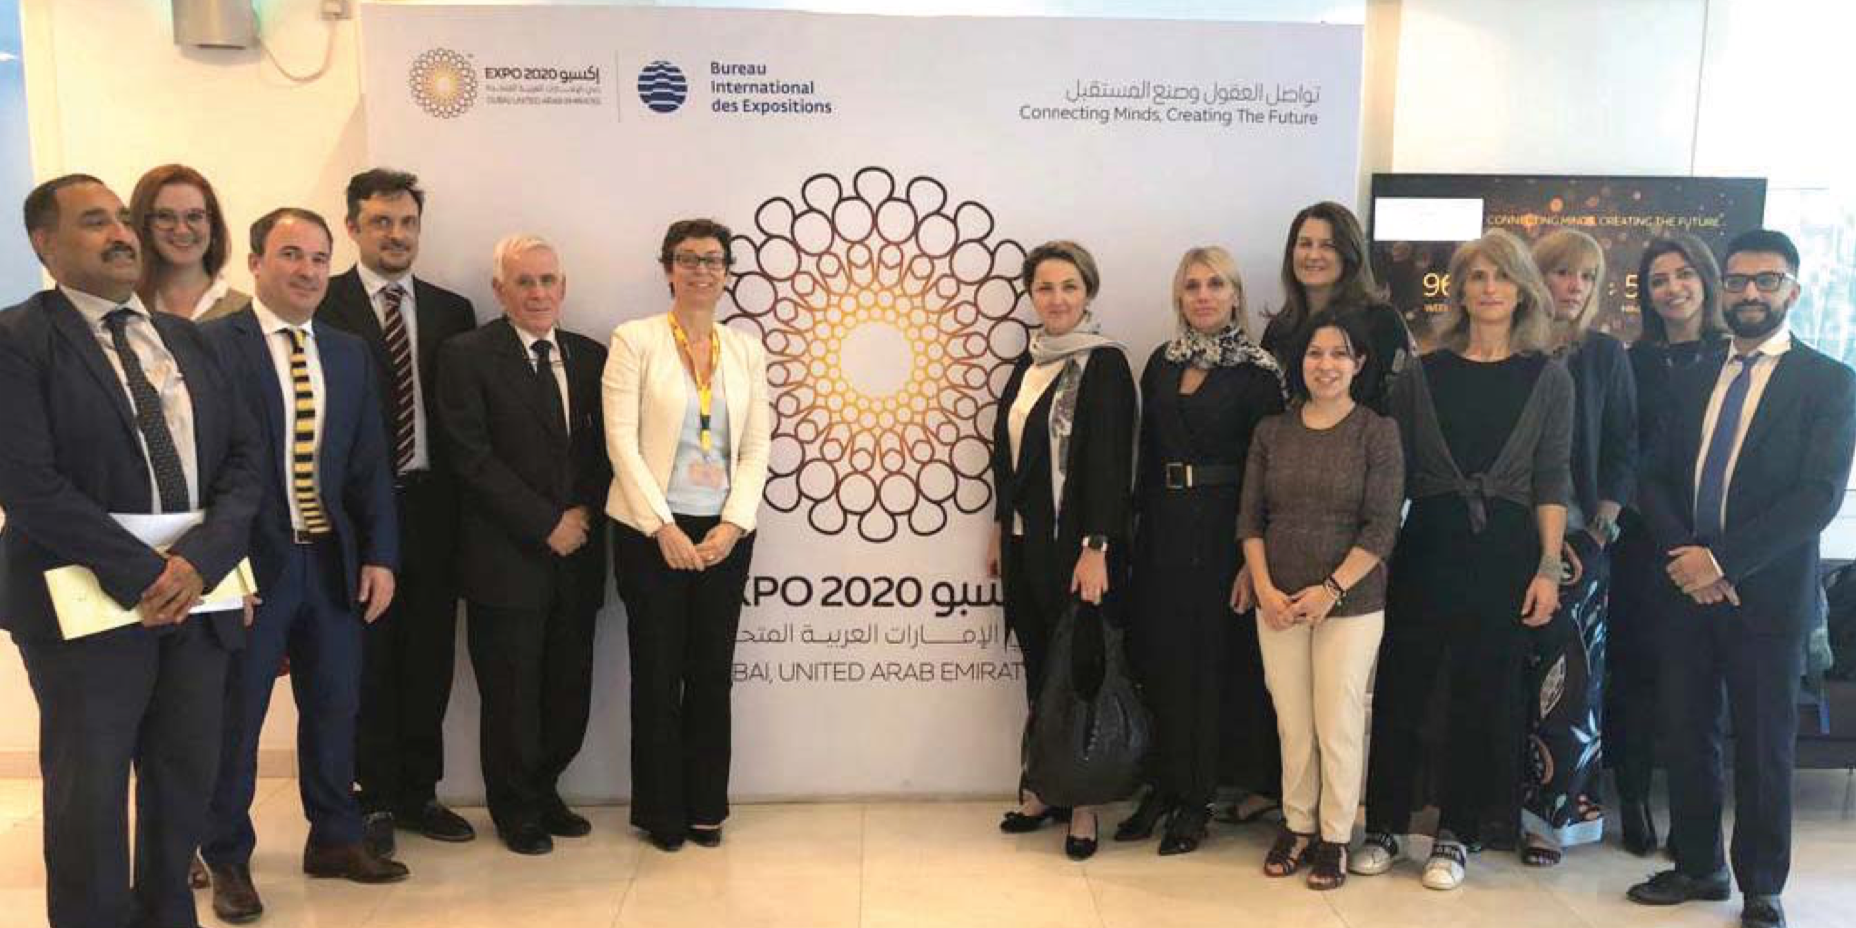 Enhancing the relations with the United Arab Emirates towards EXPO Dubai 2020